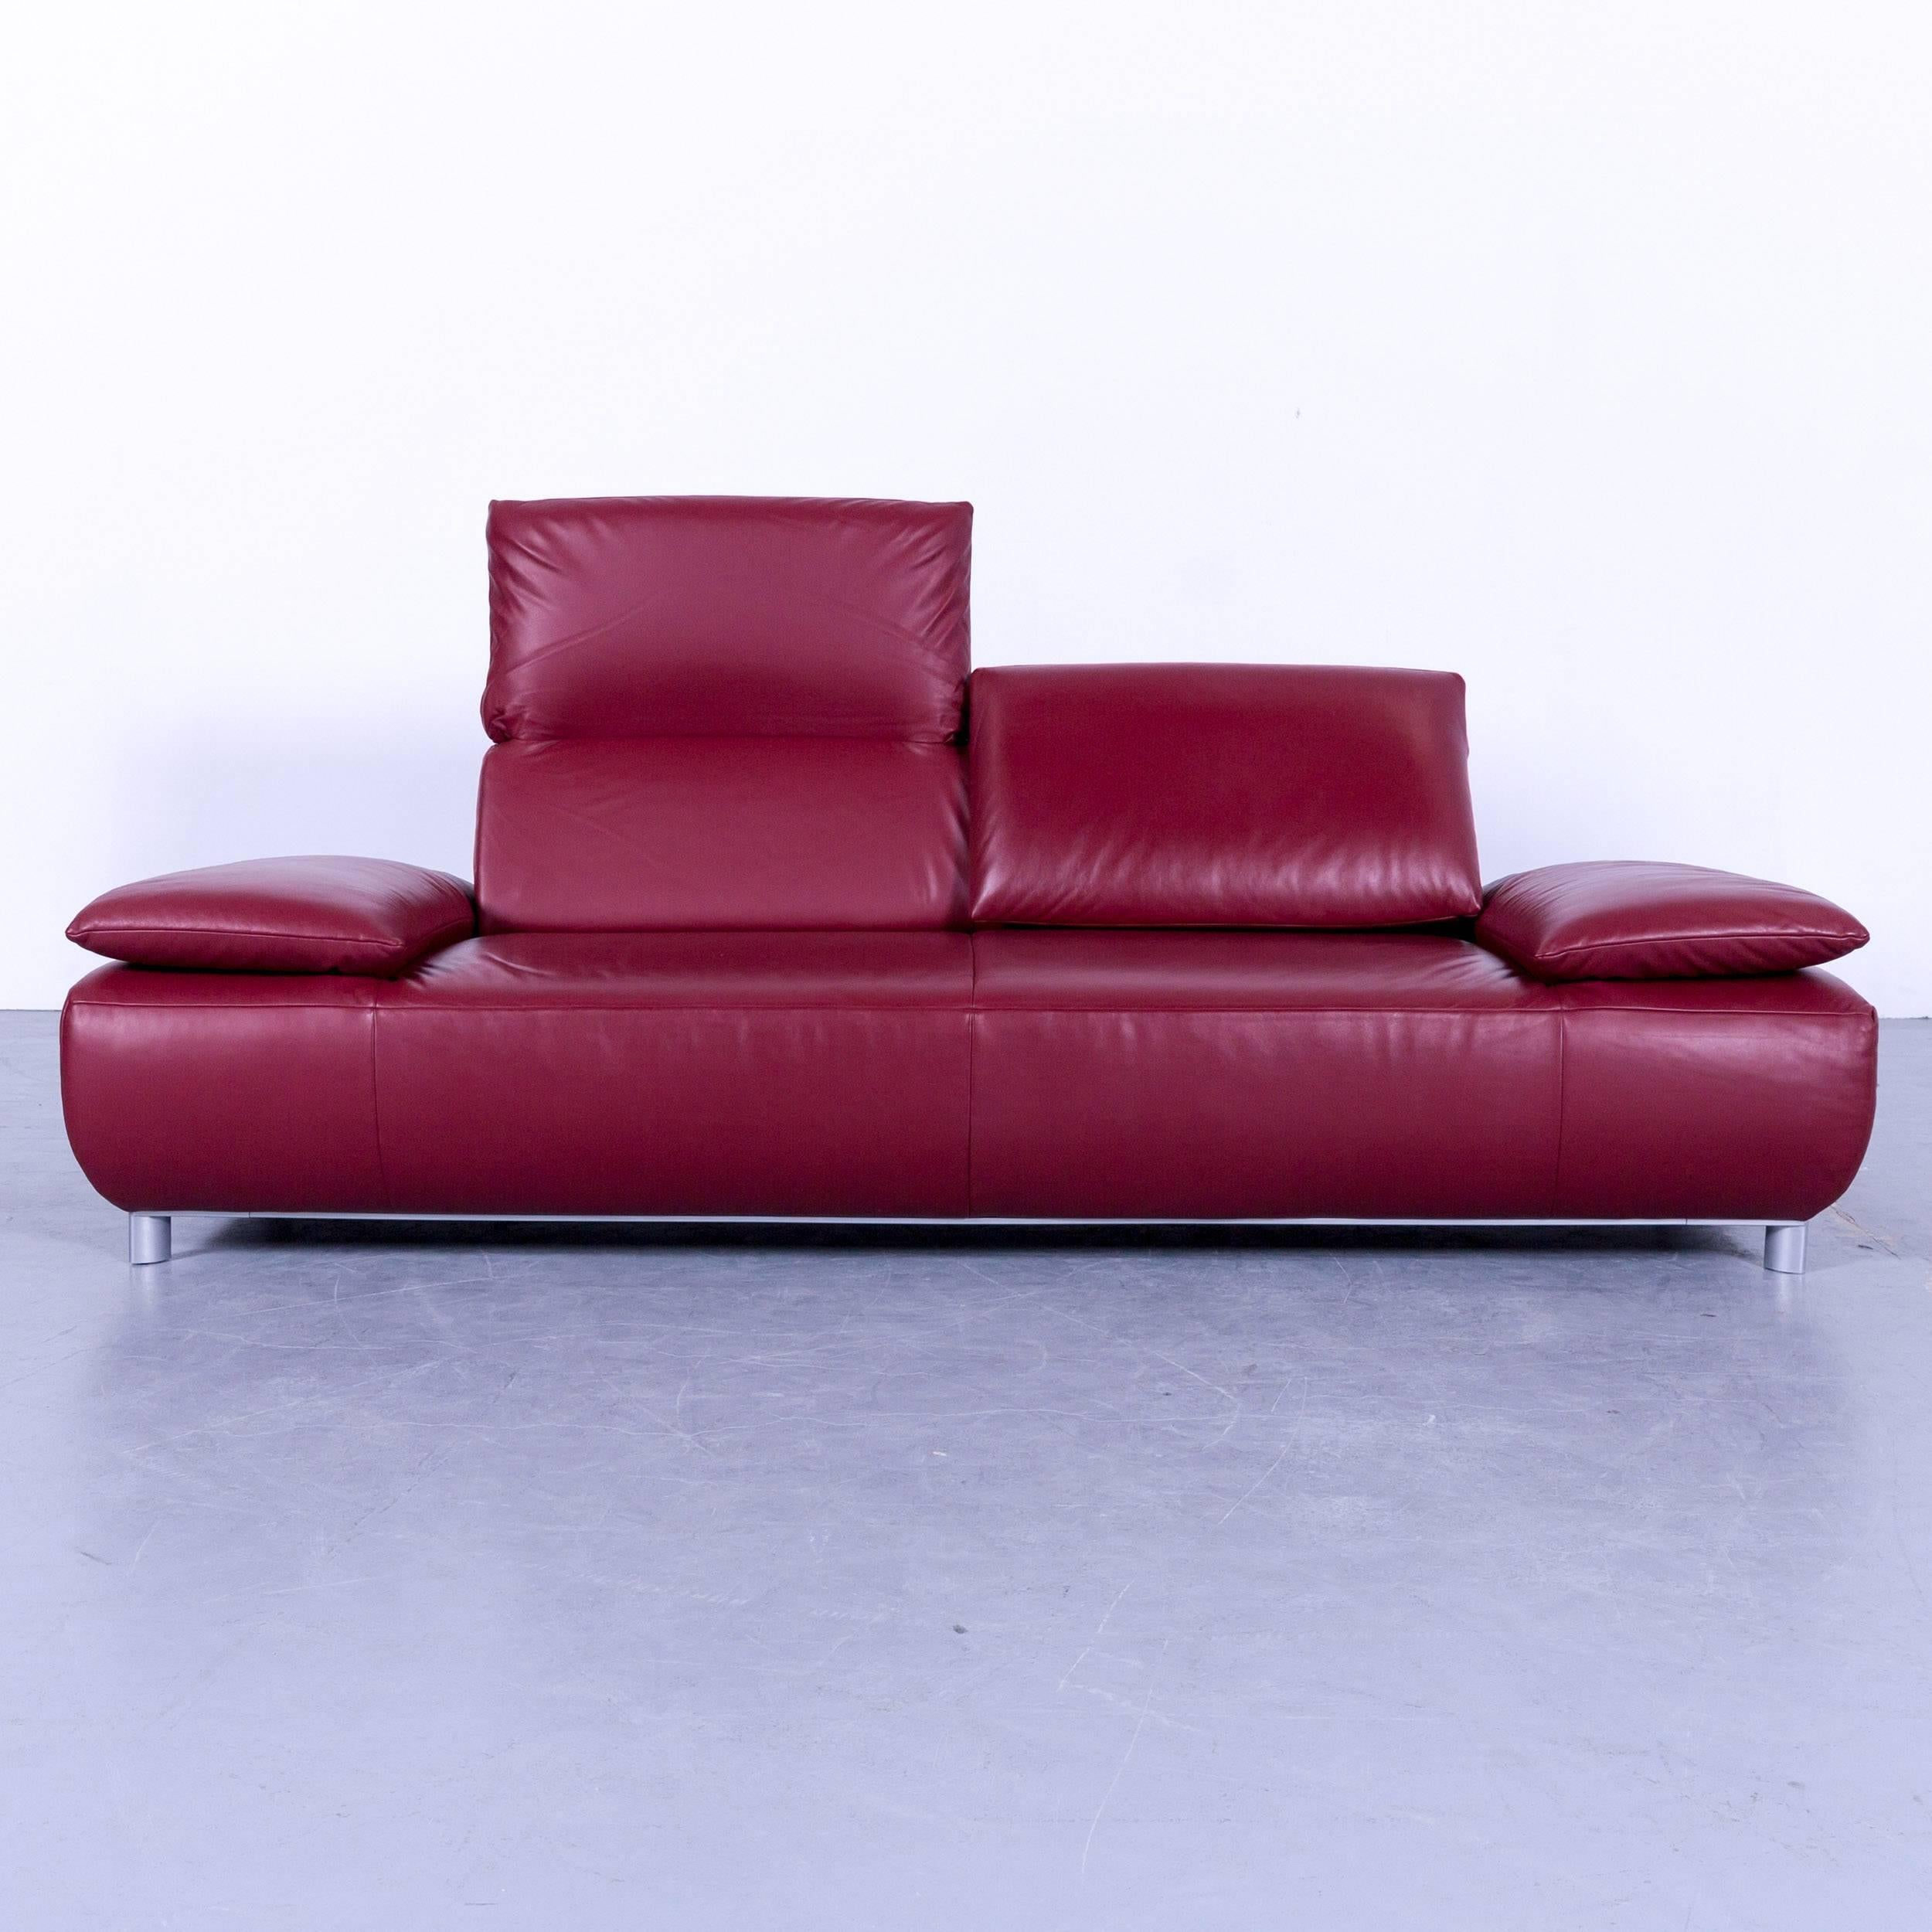 Koinor Volare Designer Sofa Leather Red Two Three Seat Couch Set And  Footstool, Made